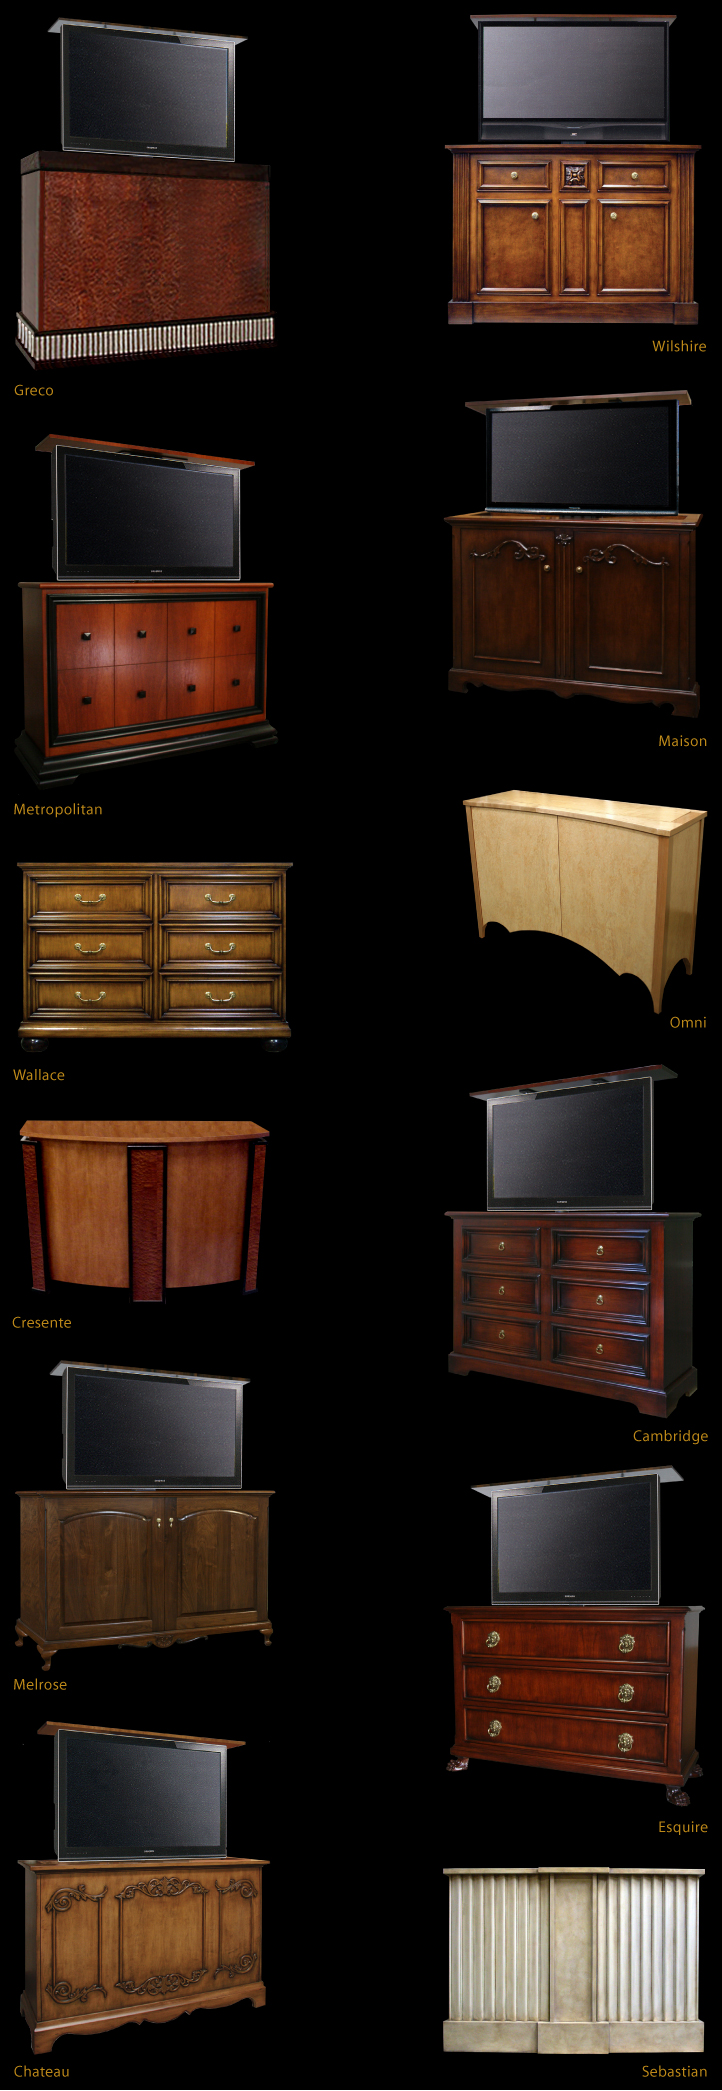 Neo-clasic TV Lift Cabinets, French TV Lift Cabinets, ContemporaryTV Lift Cabinets, 